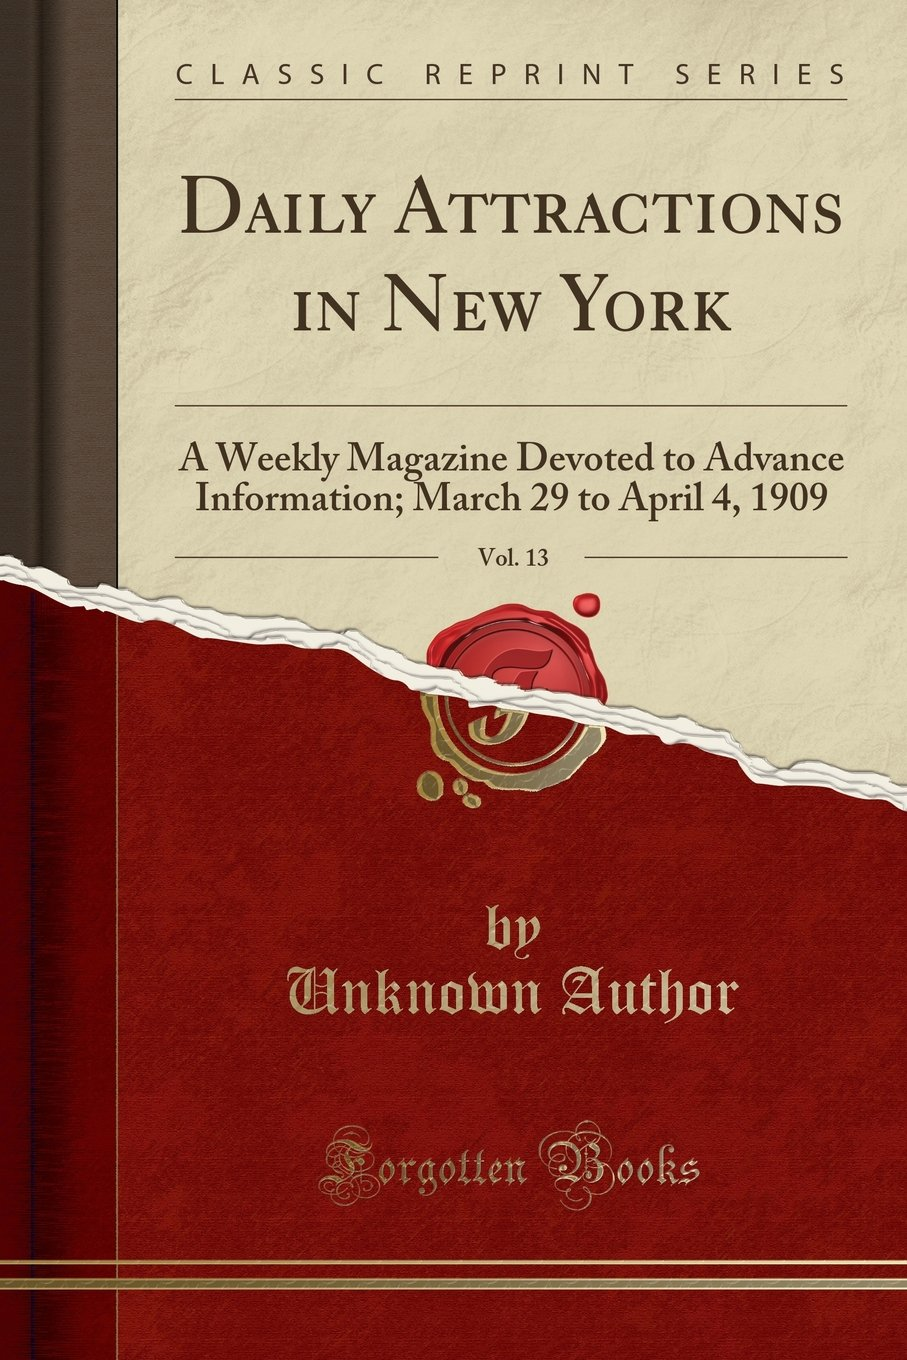 Daily Attractions in New York, Vol. 13: A Weekly Magazine Devoted to Advance Information; March 29 to April 4, 1909 (Classic Reprint) pdf